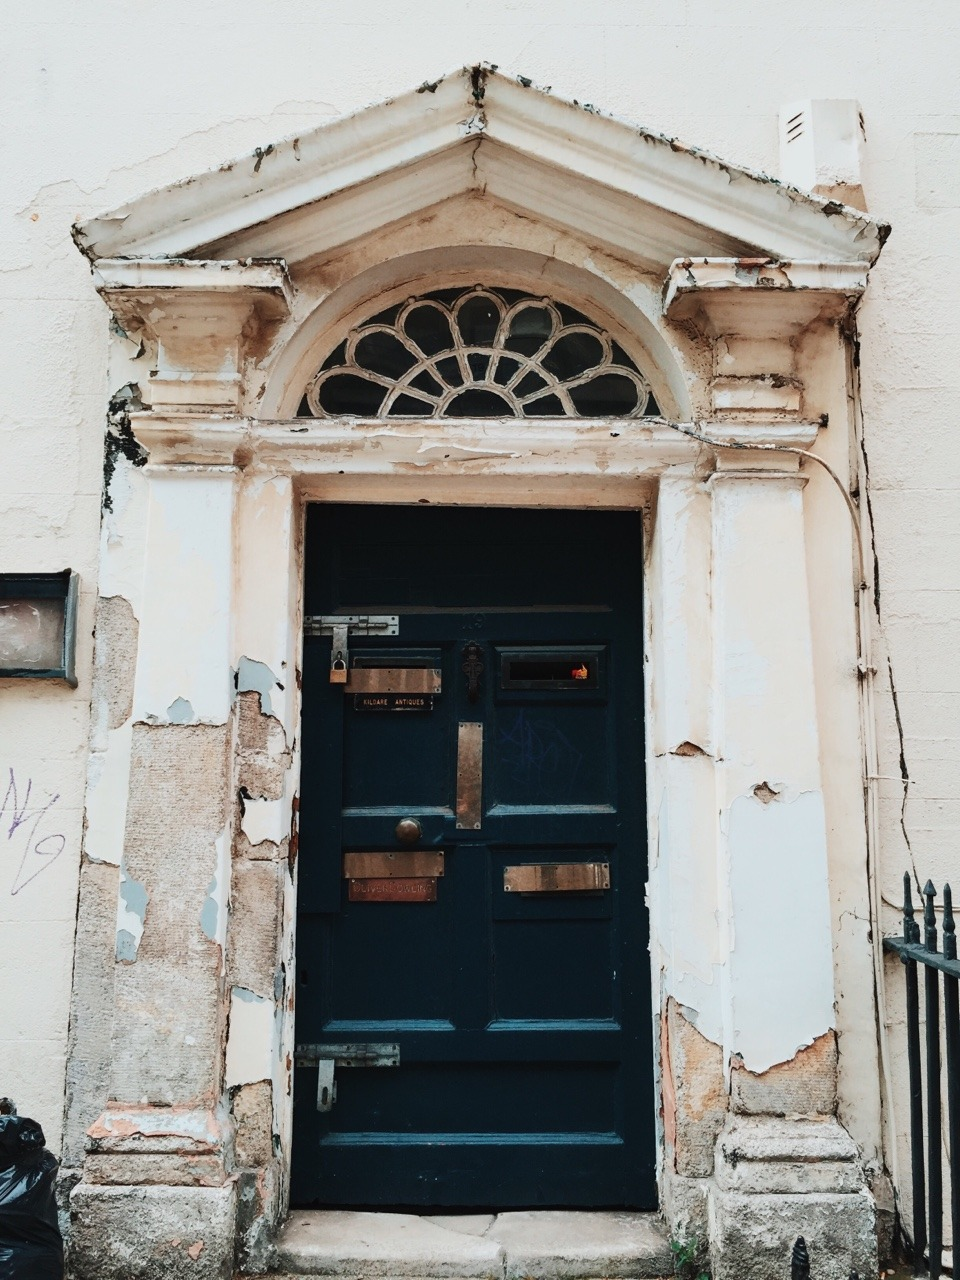 fxgeek :     Another old Dublin doorway. I love the texture of these old worn out doorways, where you can see the layers of old paint